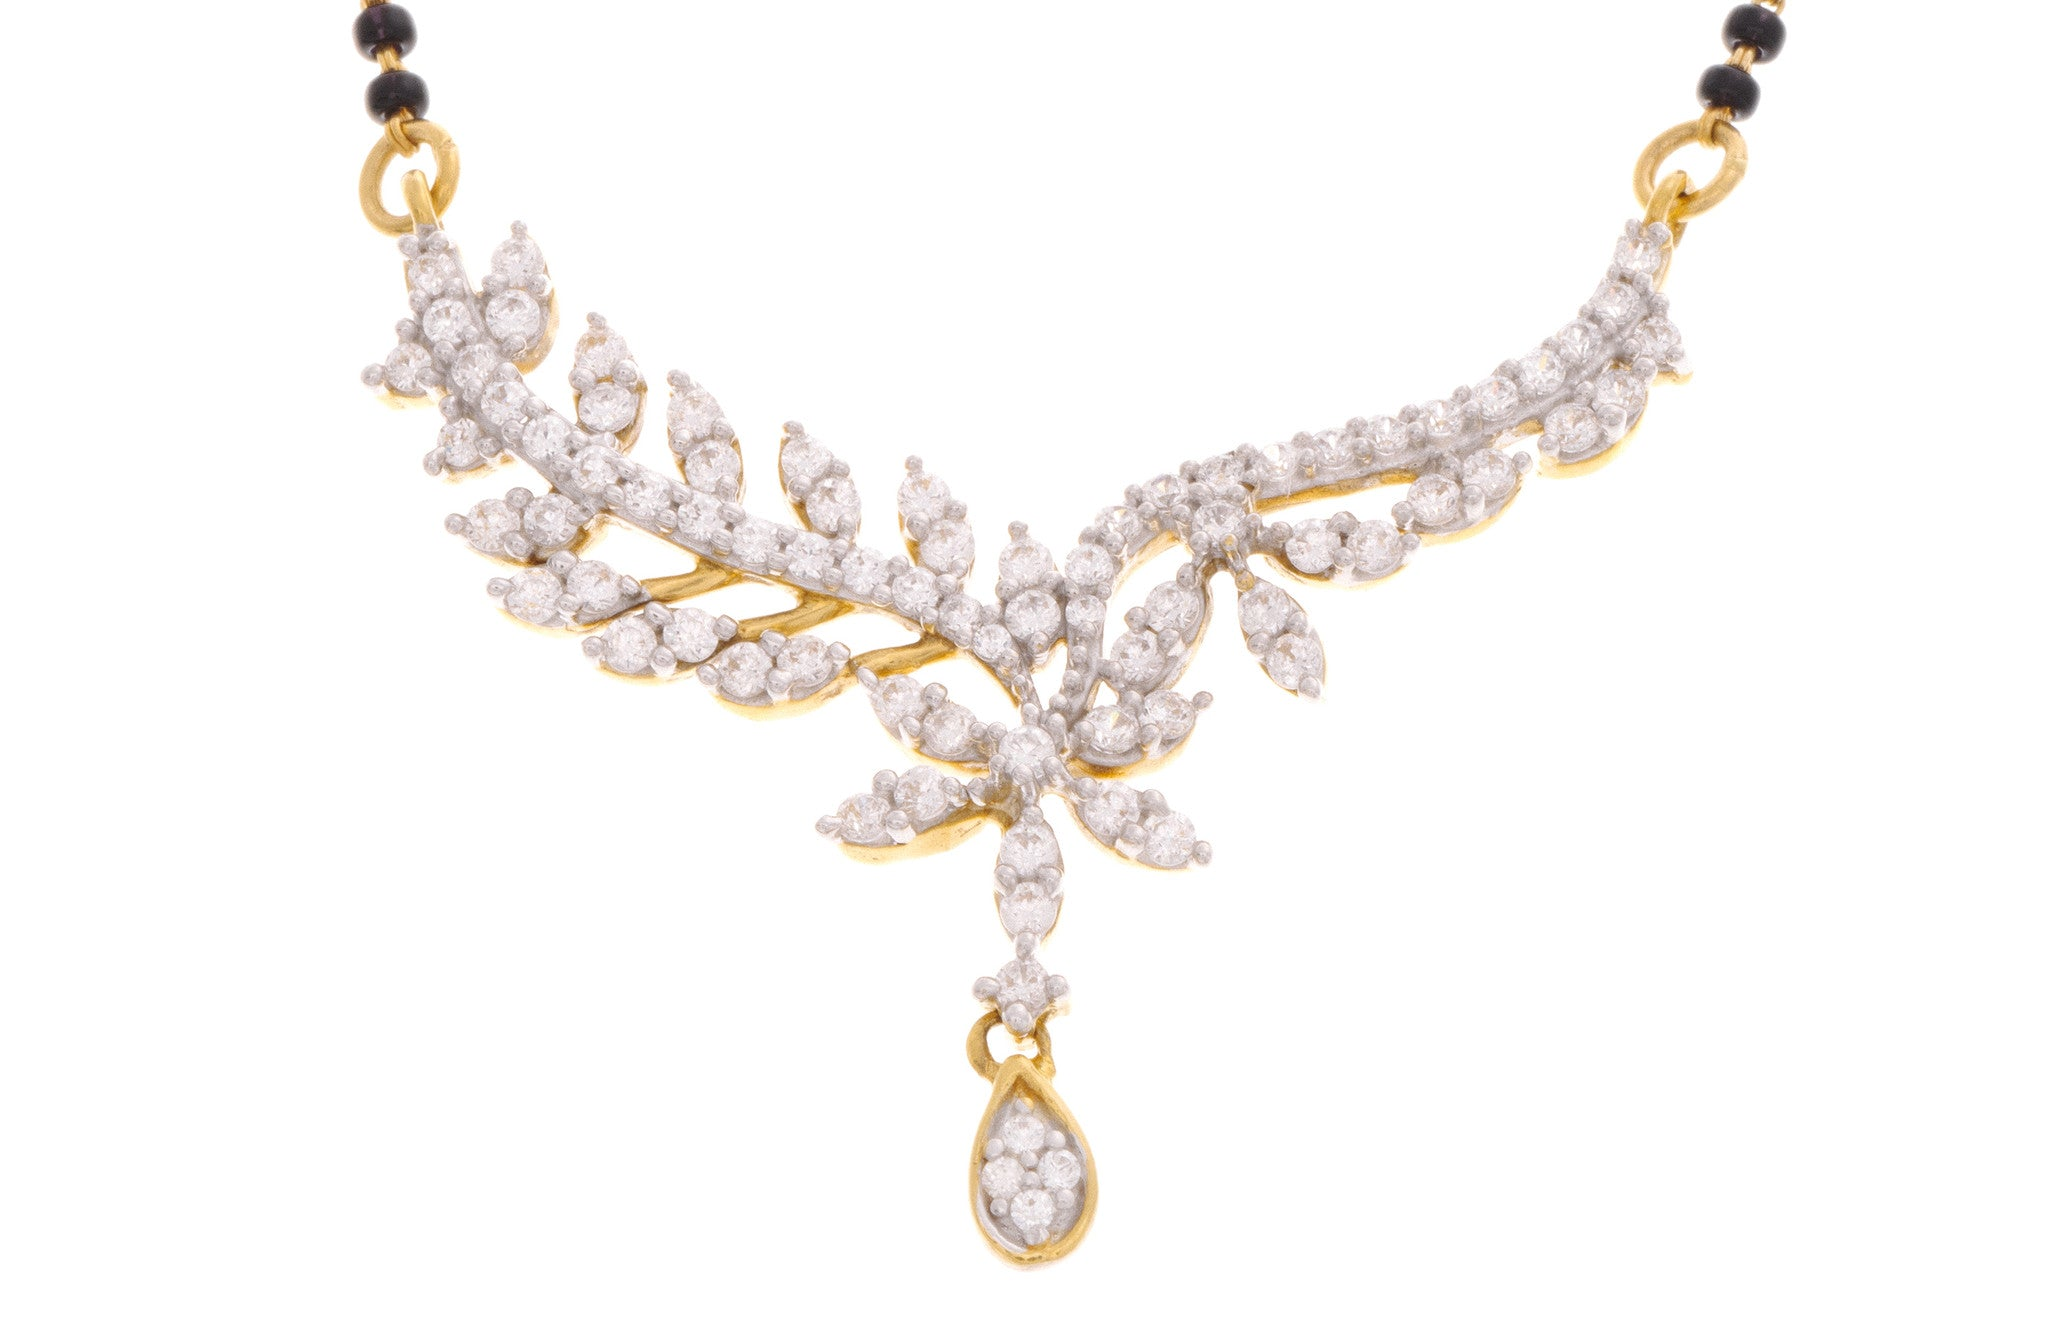 22ct Yellow Gold Cubic Zirconia Mangal Sutra & Earring Set, Minar Jewellers - 4